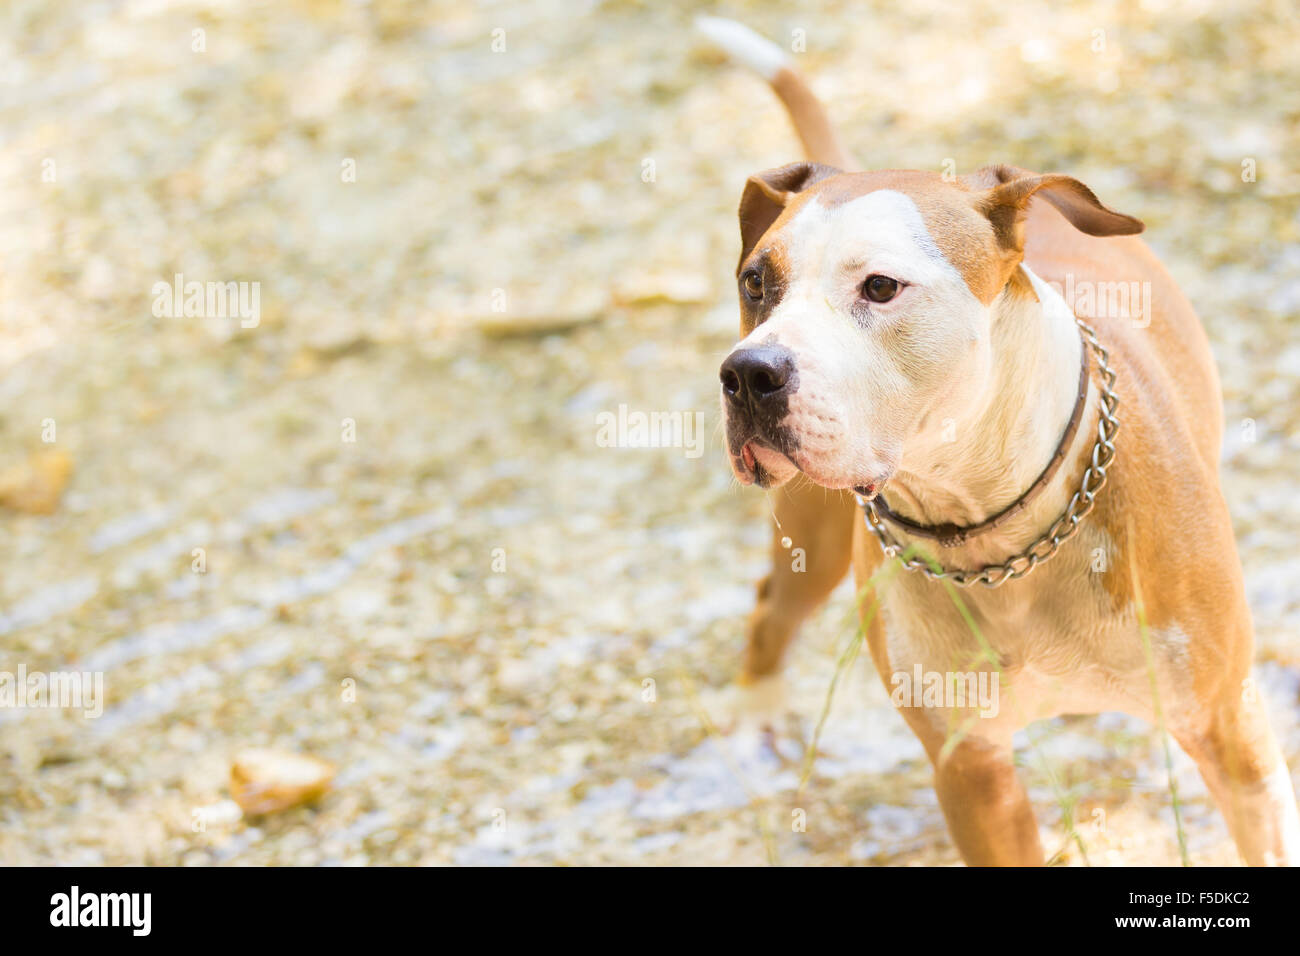 American staffordshire terrier dog playing in water. - Stock Image